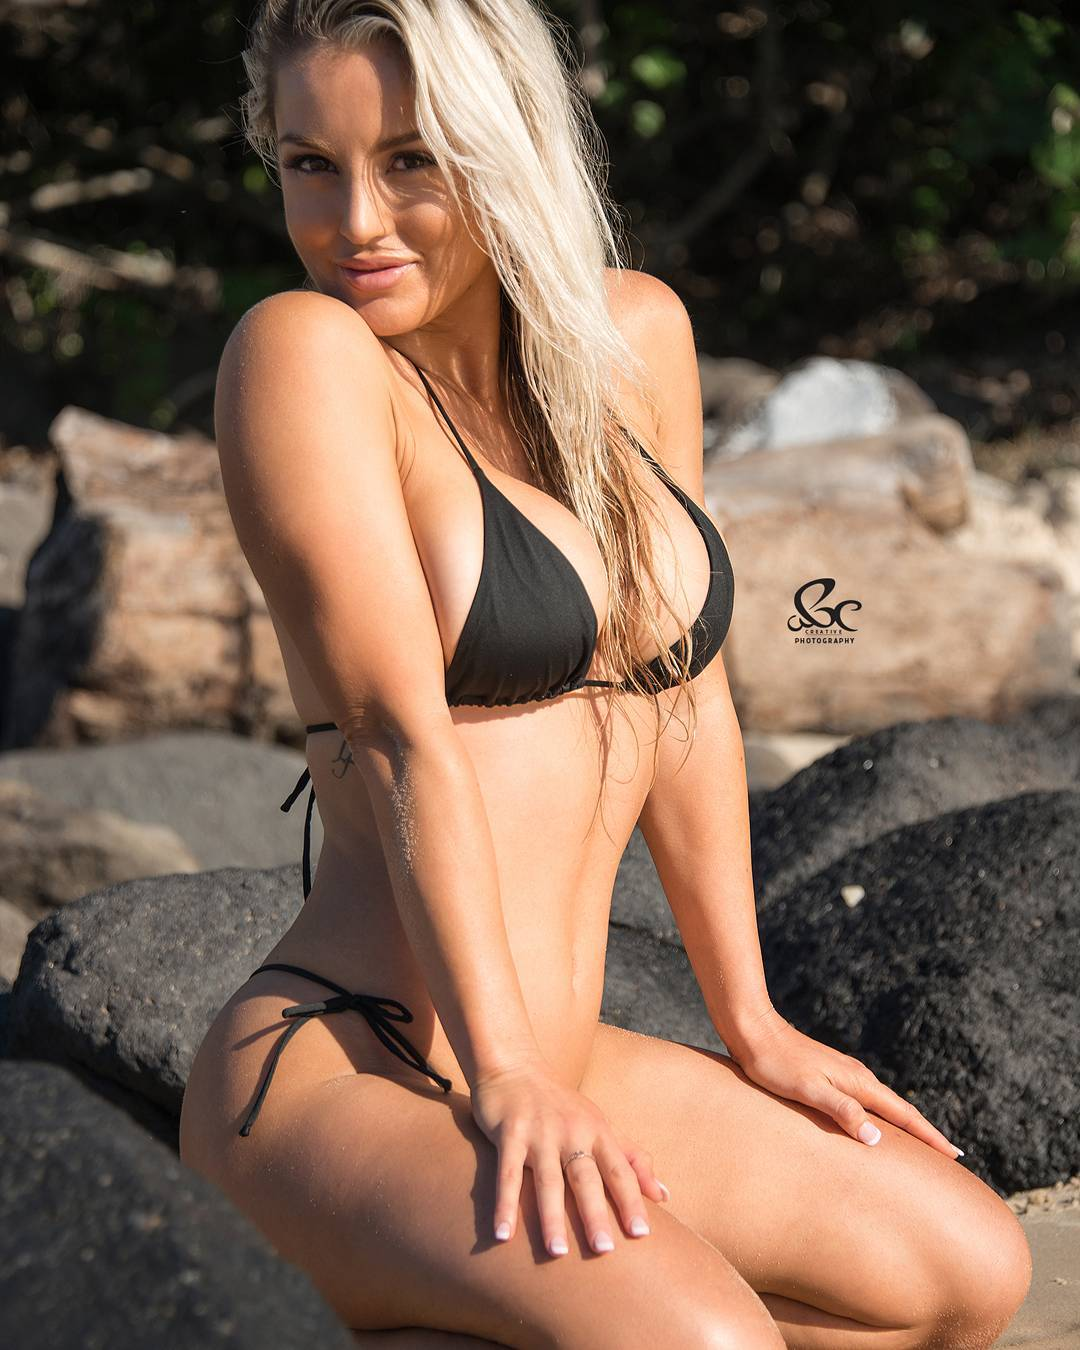 Sexy blonde fitness model Marijana Stojic in a bikini